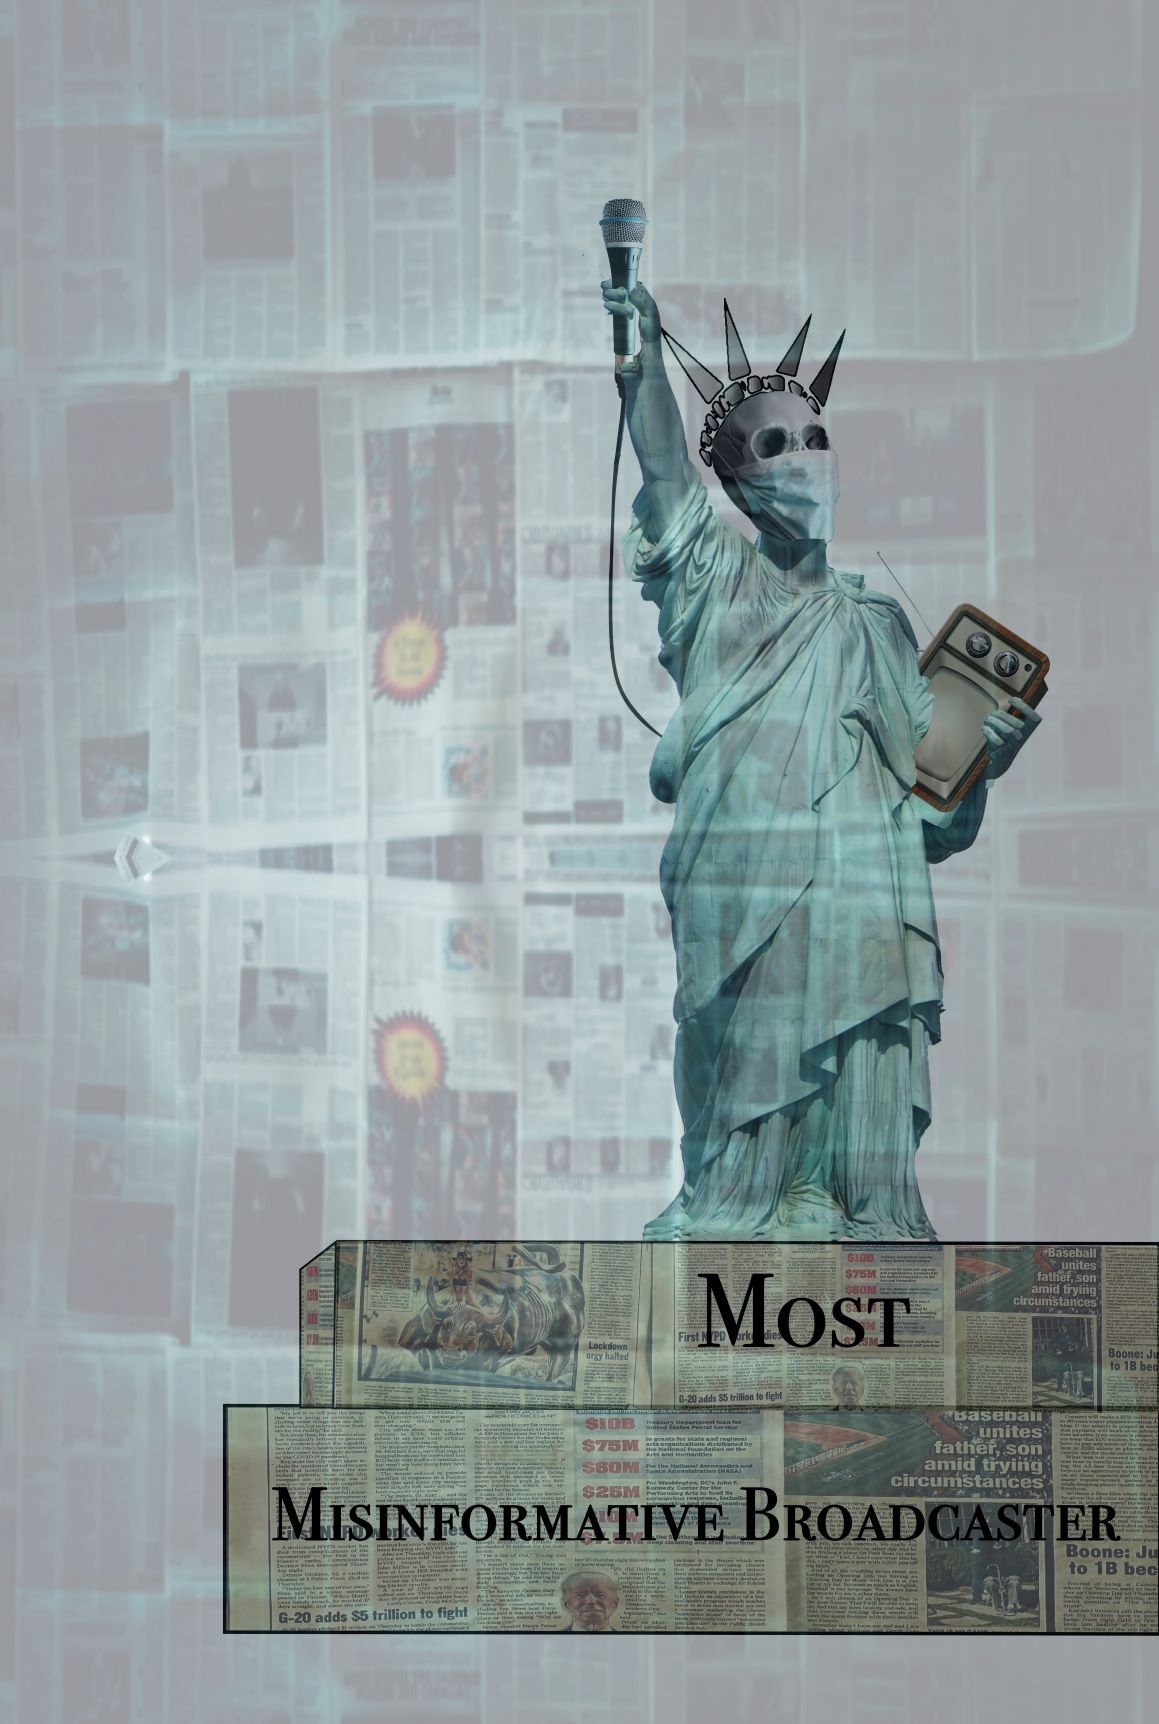 Image of statue of liberty with skull, imposed over newspaper images, text reads: Most misinformative broadcaster